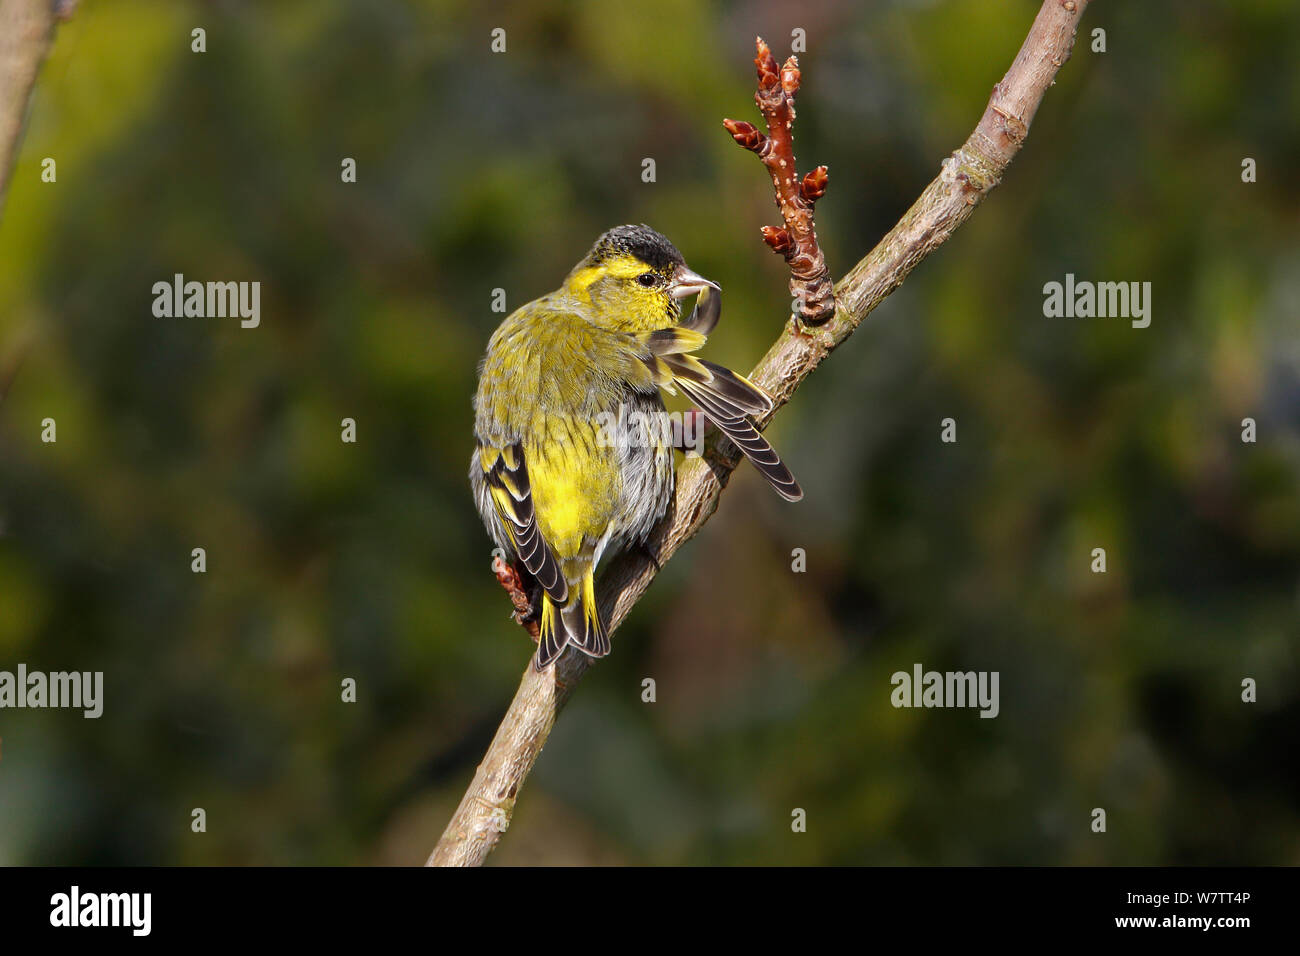 Siskin (Carduelis spinus) male preening perched in tree in garden, Cheshire, UK, March. Stock Photo